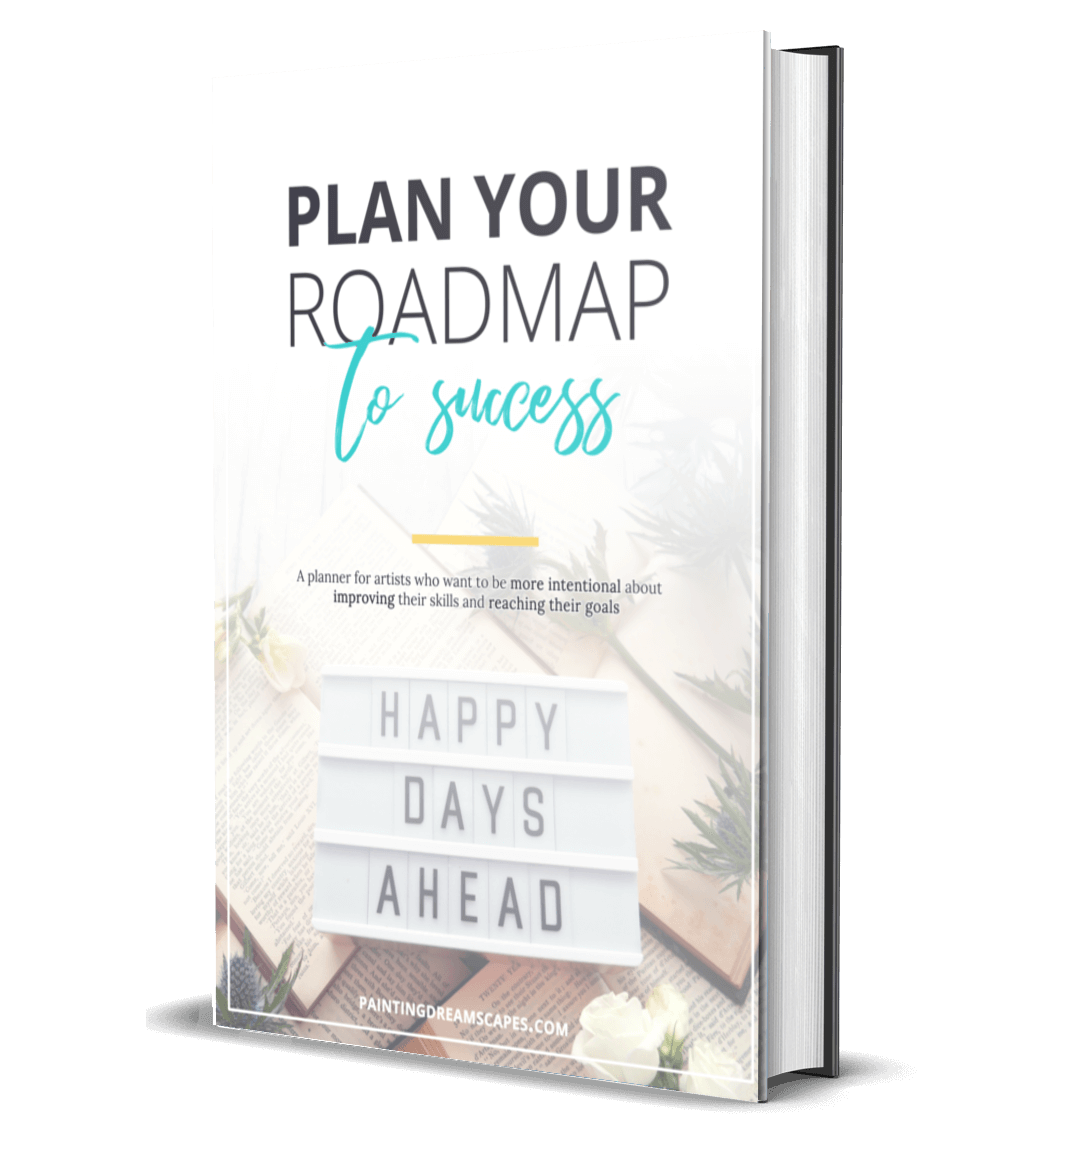 Plan your roadmap to success - Planner - Painting Dreamscapes book